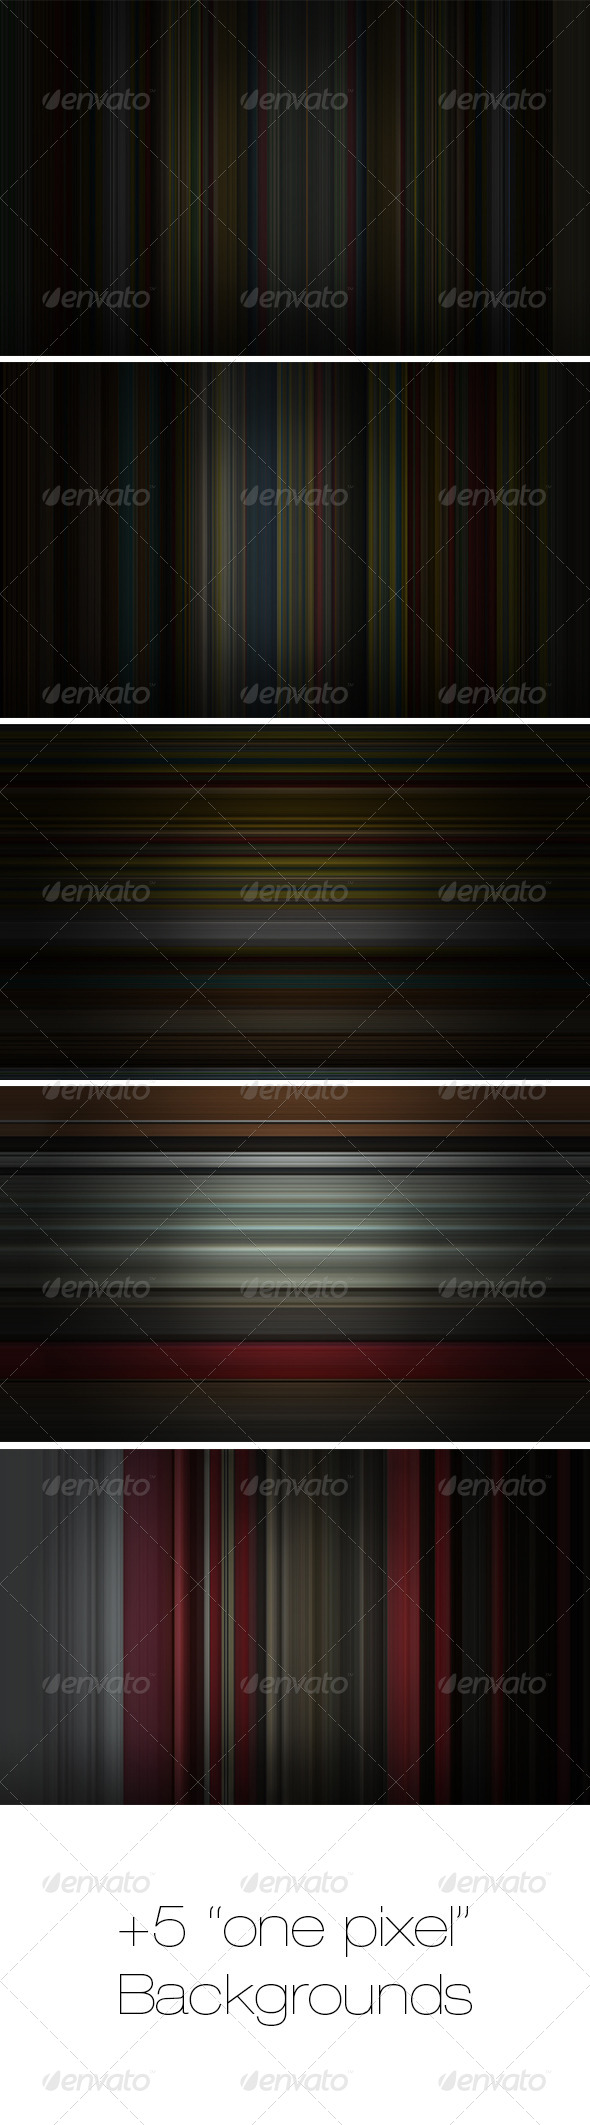 GraphicRiver One pixel backround 6695711